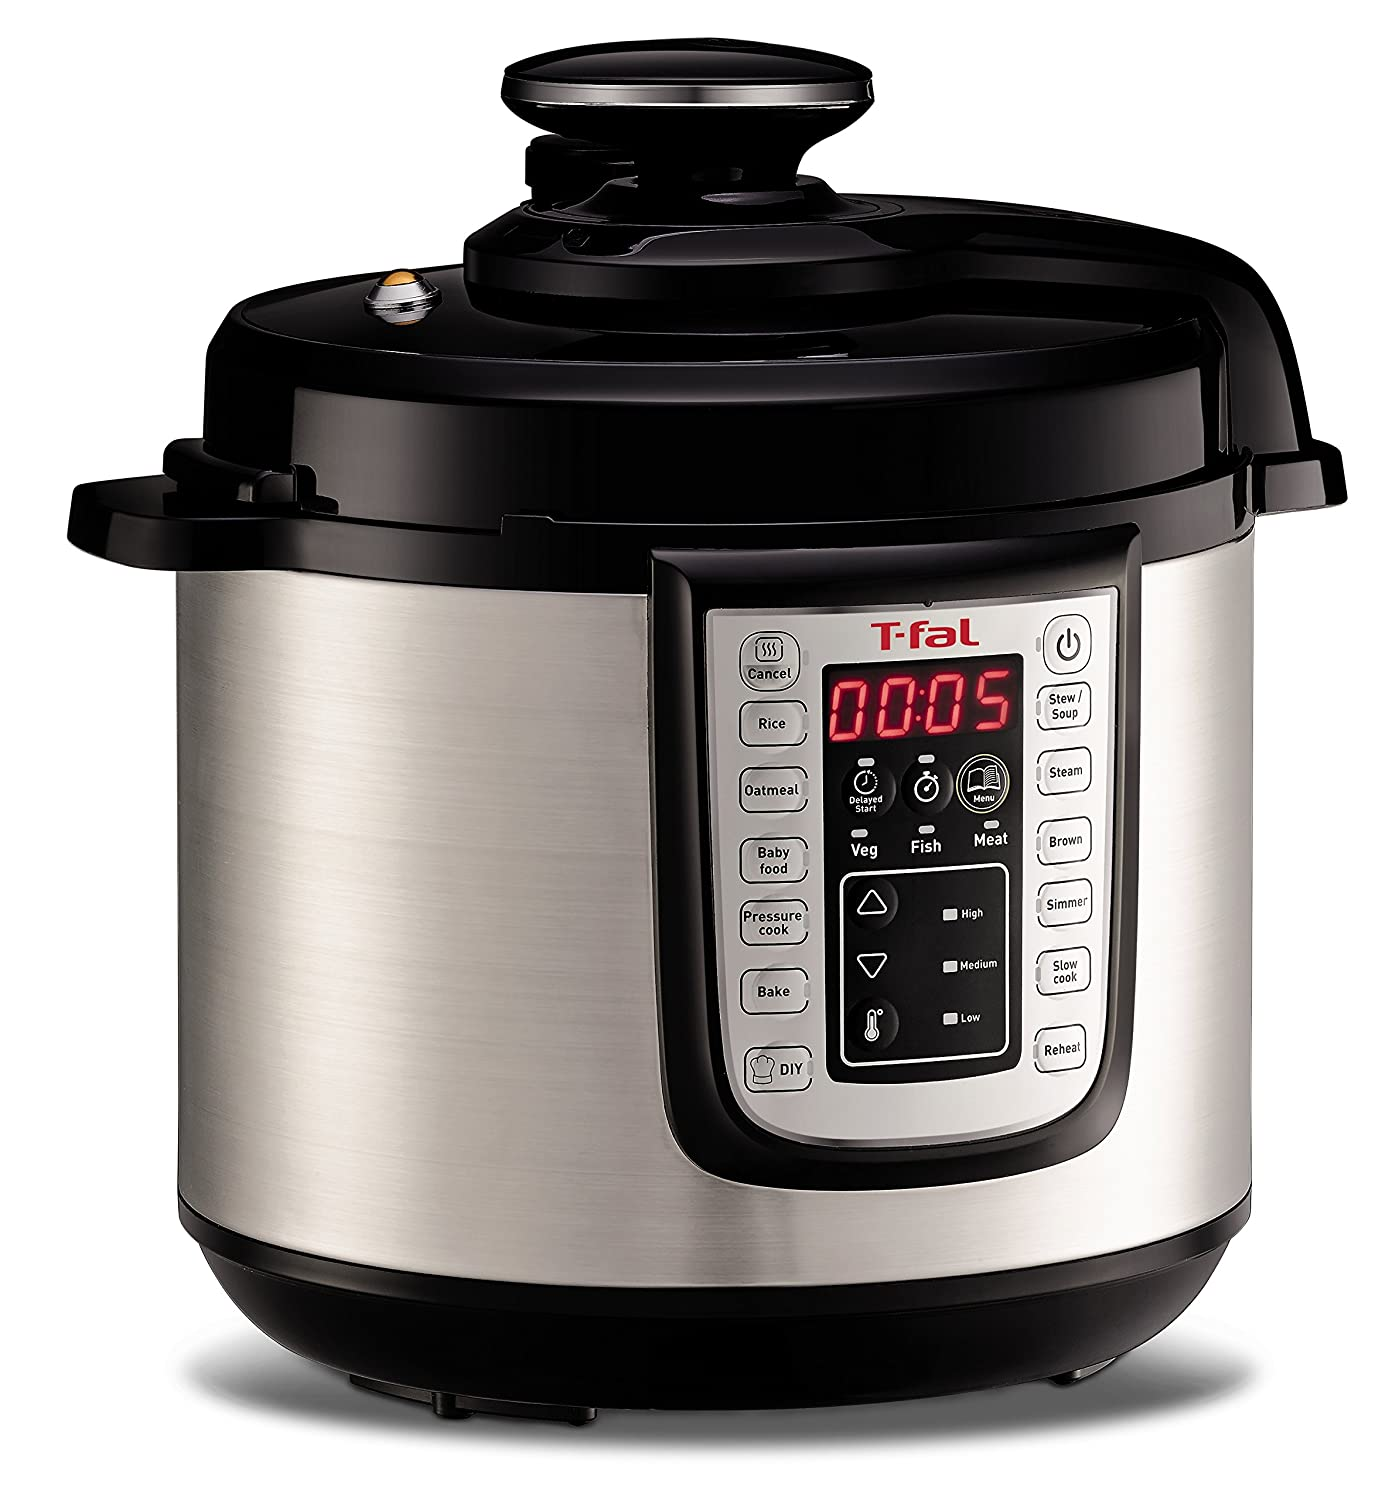 T-fal CY505E 12-in-1 Programmable Electric Multi-Functional Pressure Cooker with 25 Built-In Smart Programs / Ceramic Nonstick Cooking Pot and Stainless Steel Housing